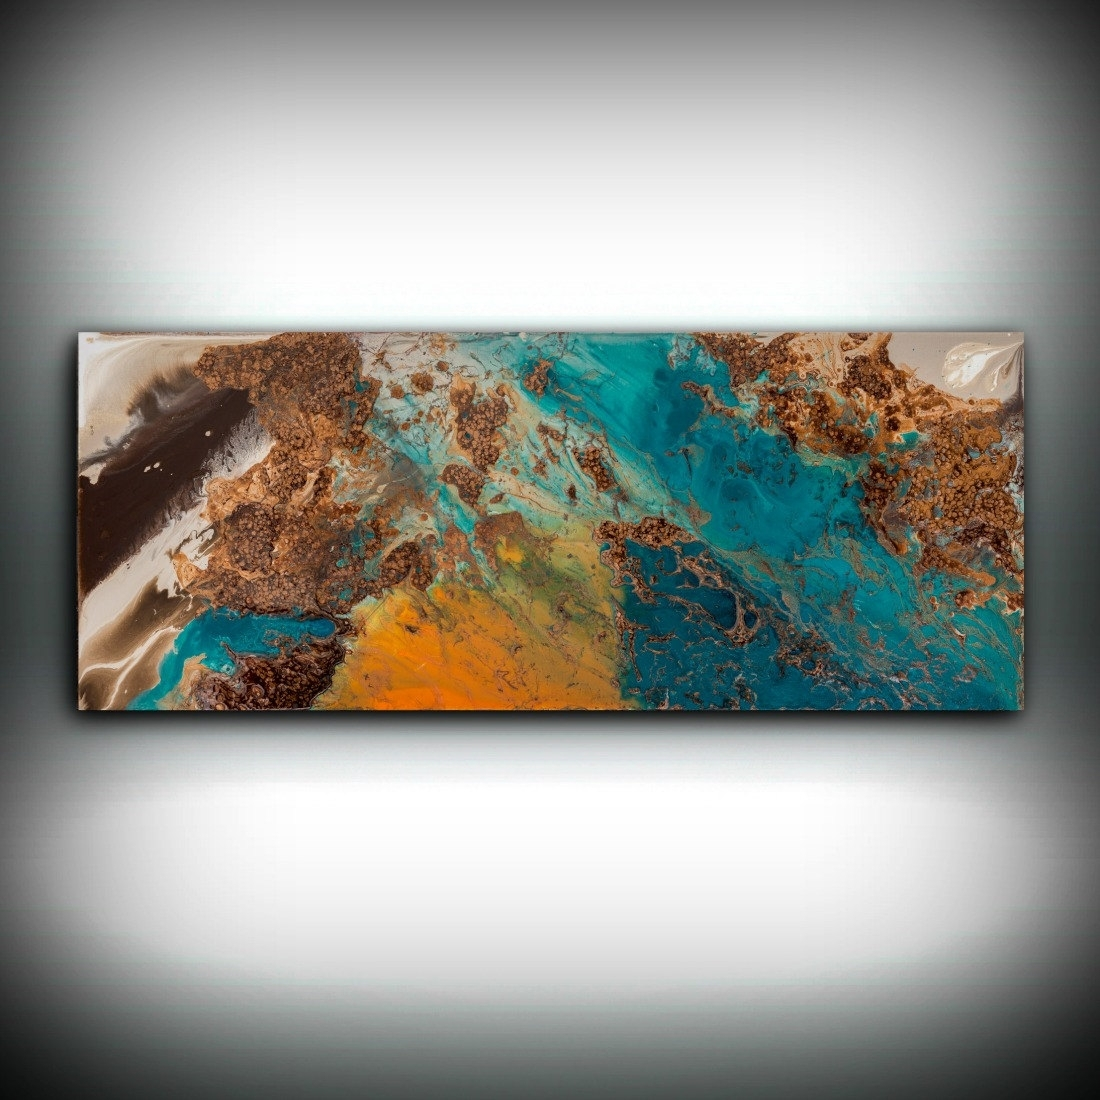 Sale Blue And Copper Art, Wall Art Prints Fine Art Prints Abstract Intended For Most Popular Abstract Outdoor Wall Art (View 17 of 20)